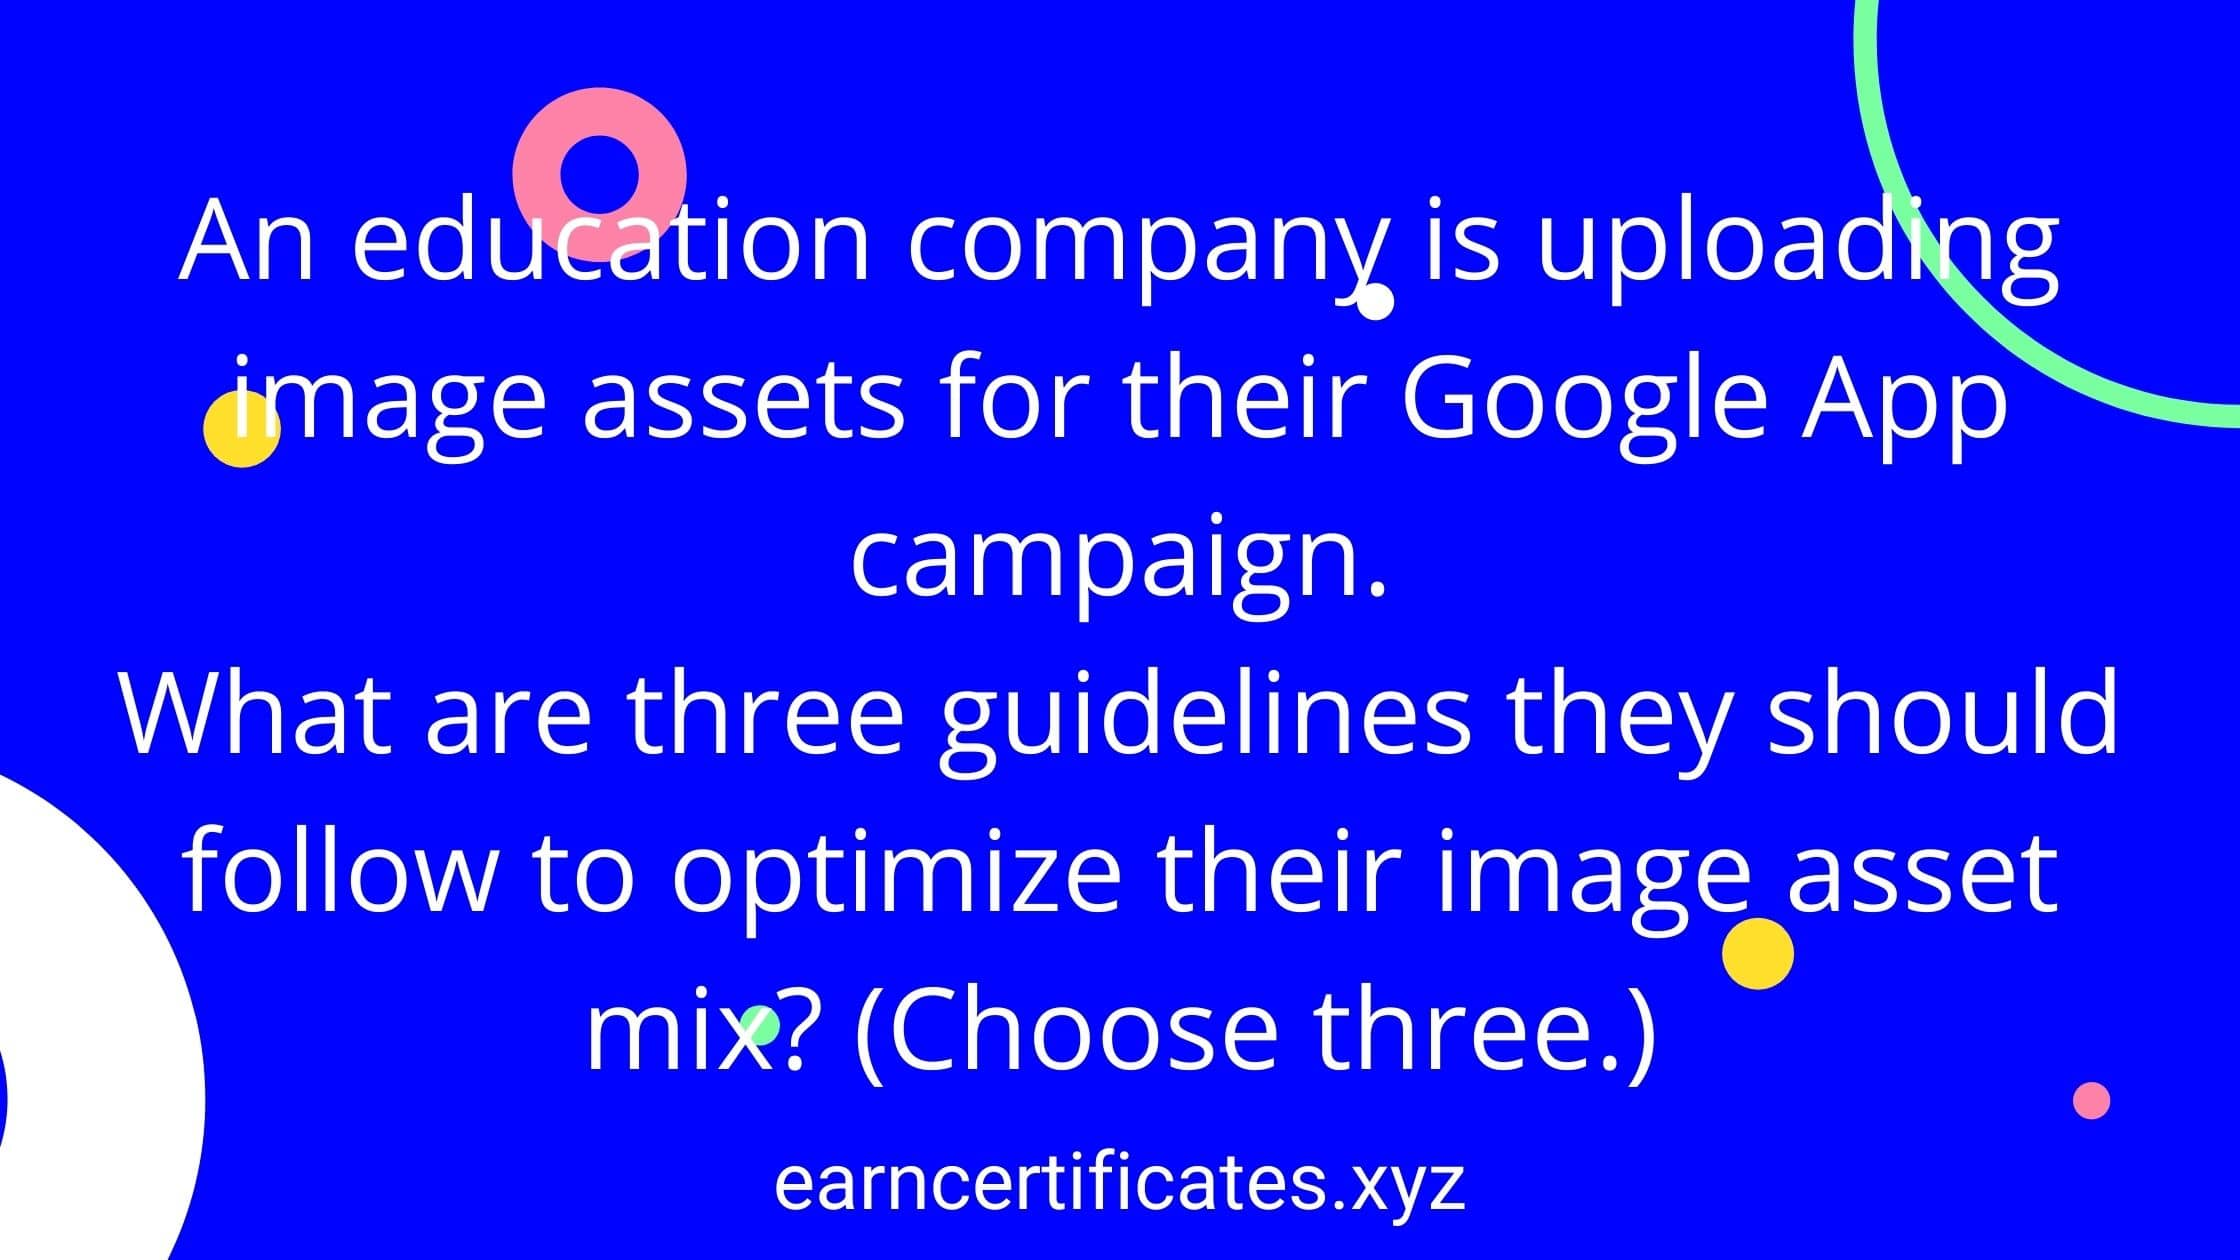 An education company is uploading image assets for their Google App campaign. What are three guidelines they should follow to optimize their image asset mix? (Choose three.)